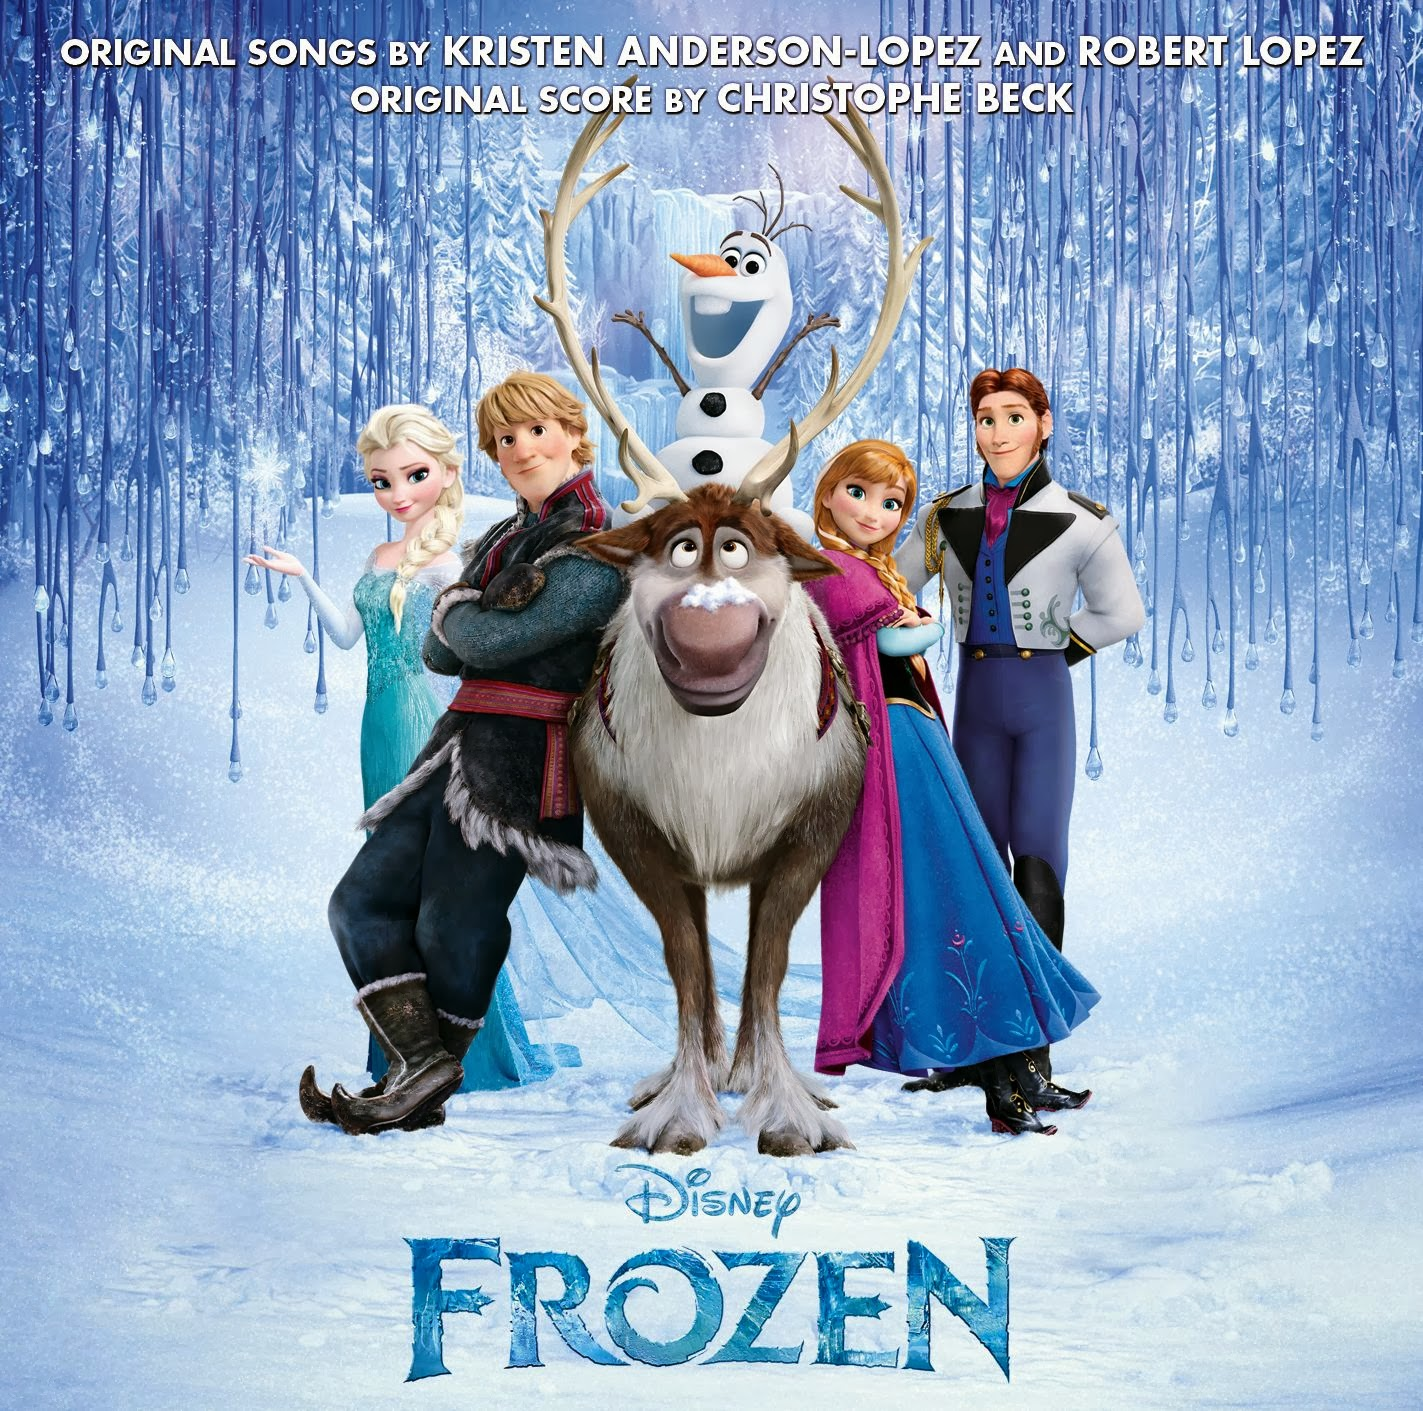 Frozen Libre 8tracks Radio Lily Murphy Disney Frozen Pitch Perfect Lorde